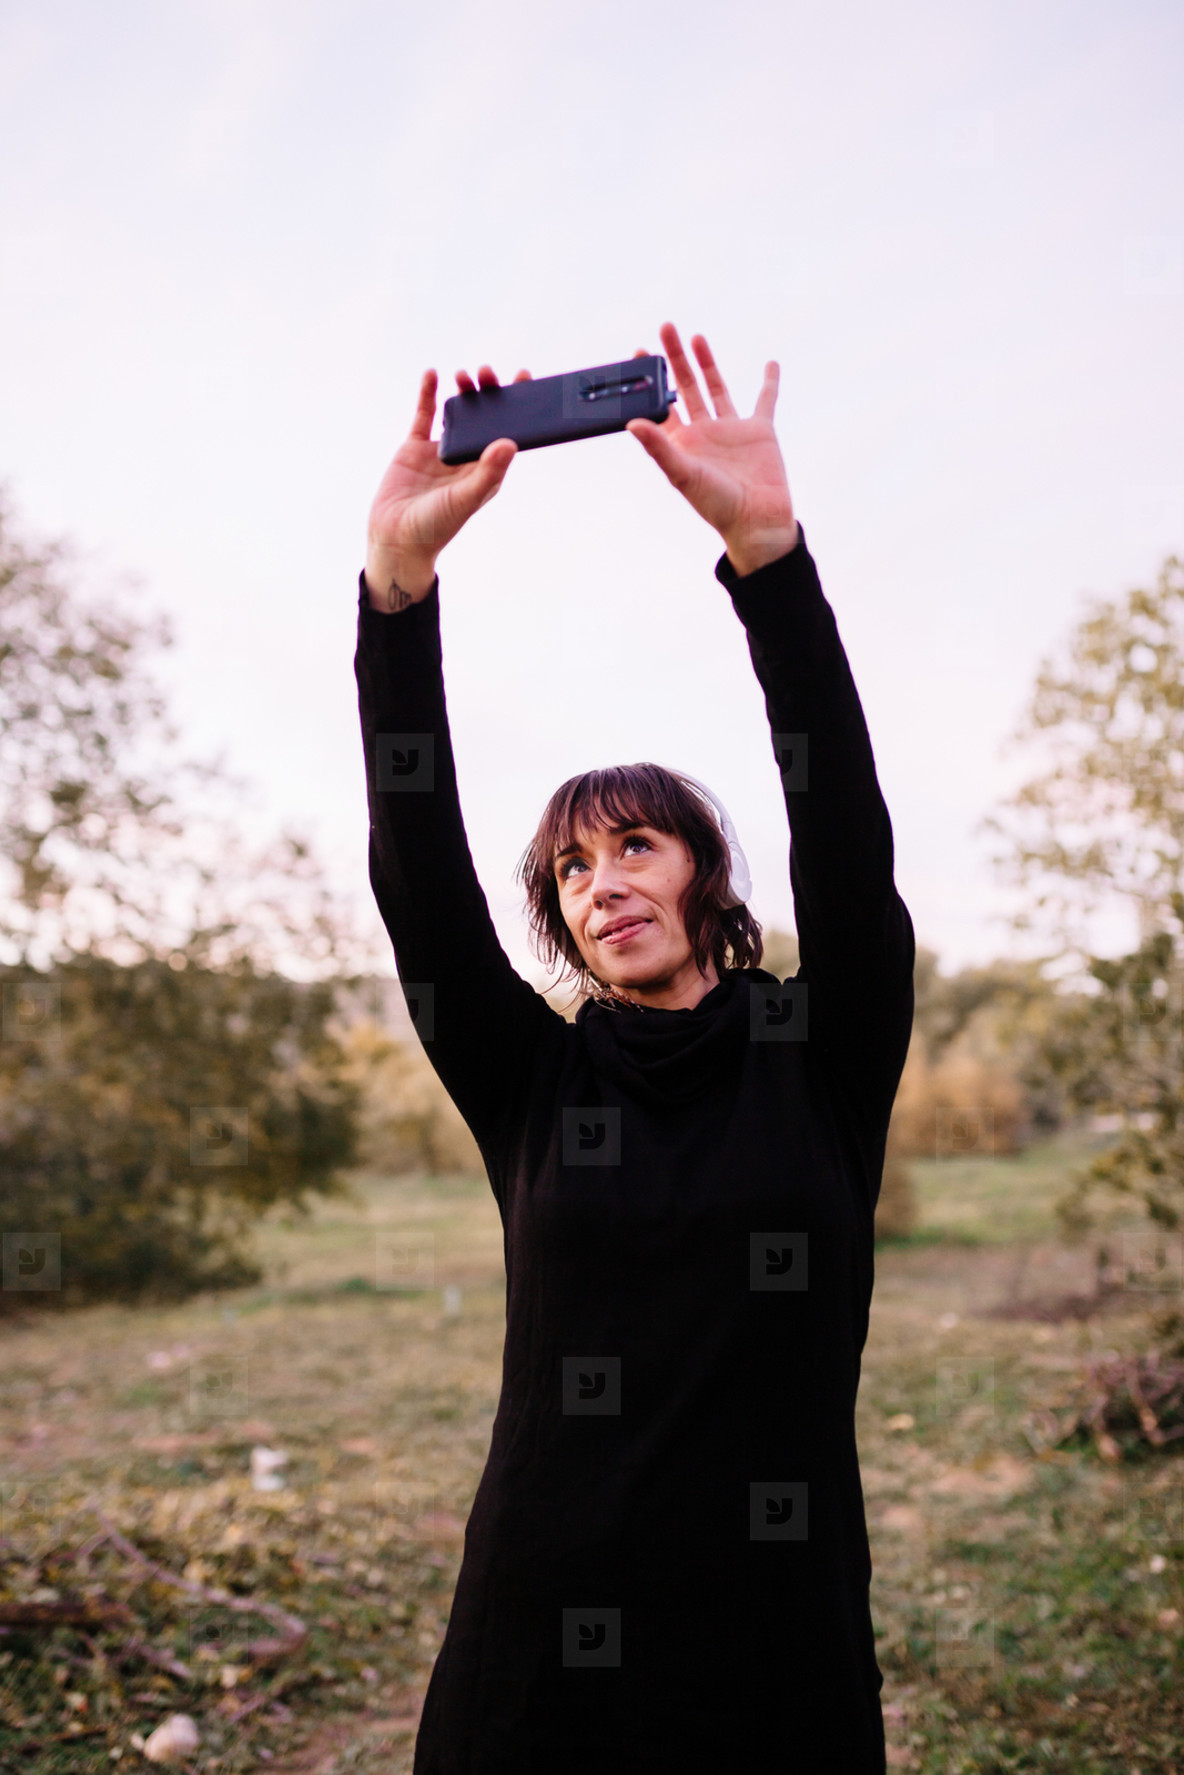 Woman in sport clothes on a wooden bench taking a selfie